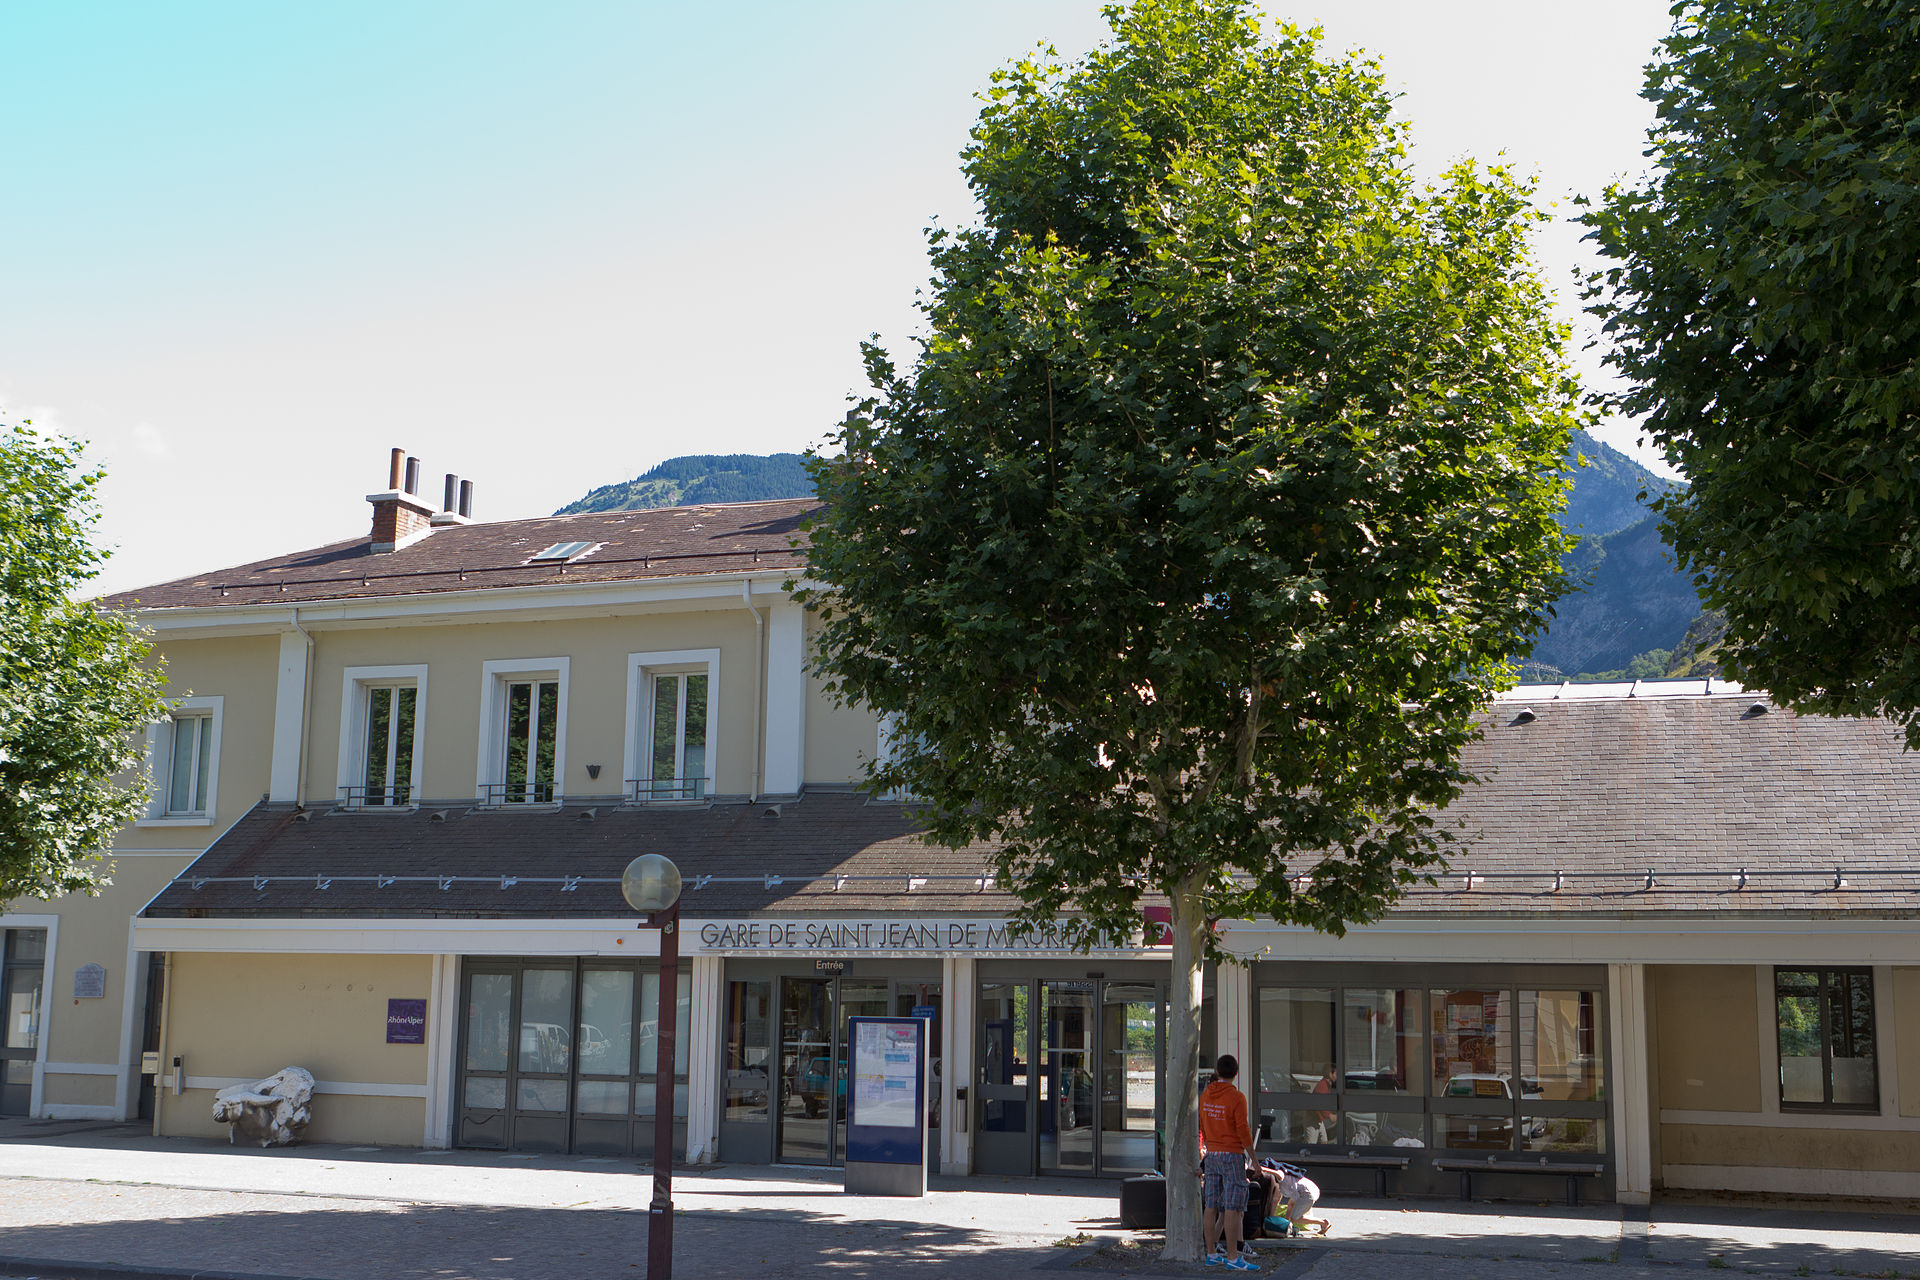 gare de saint jean de maurienne vall e de l 39 arvan wikip dia. Black Bedroom Furniture Sets. Home Design Ideas